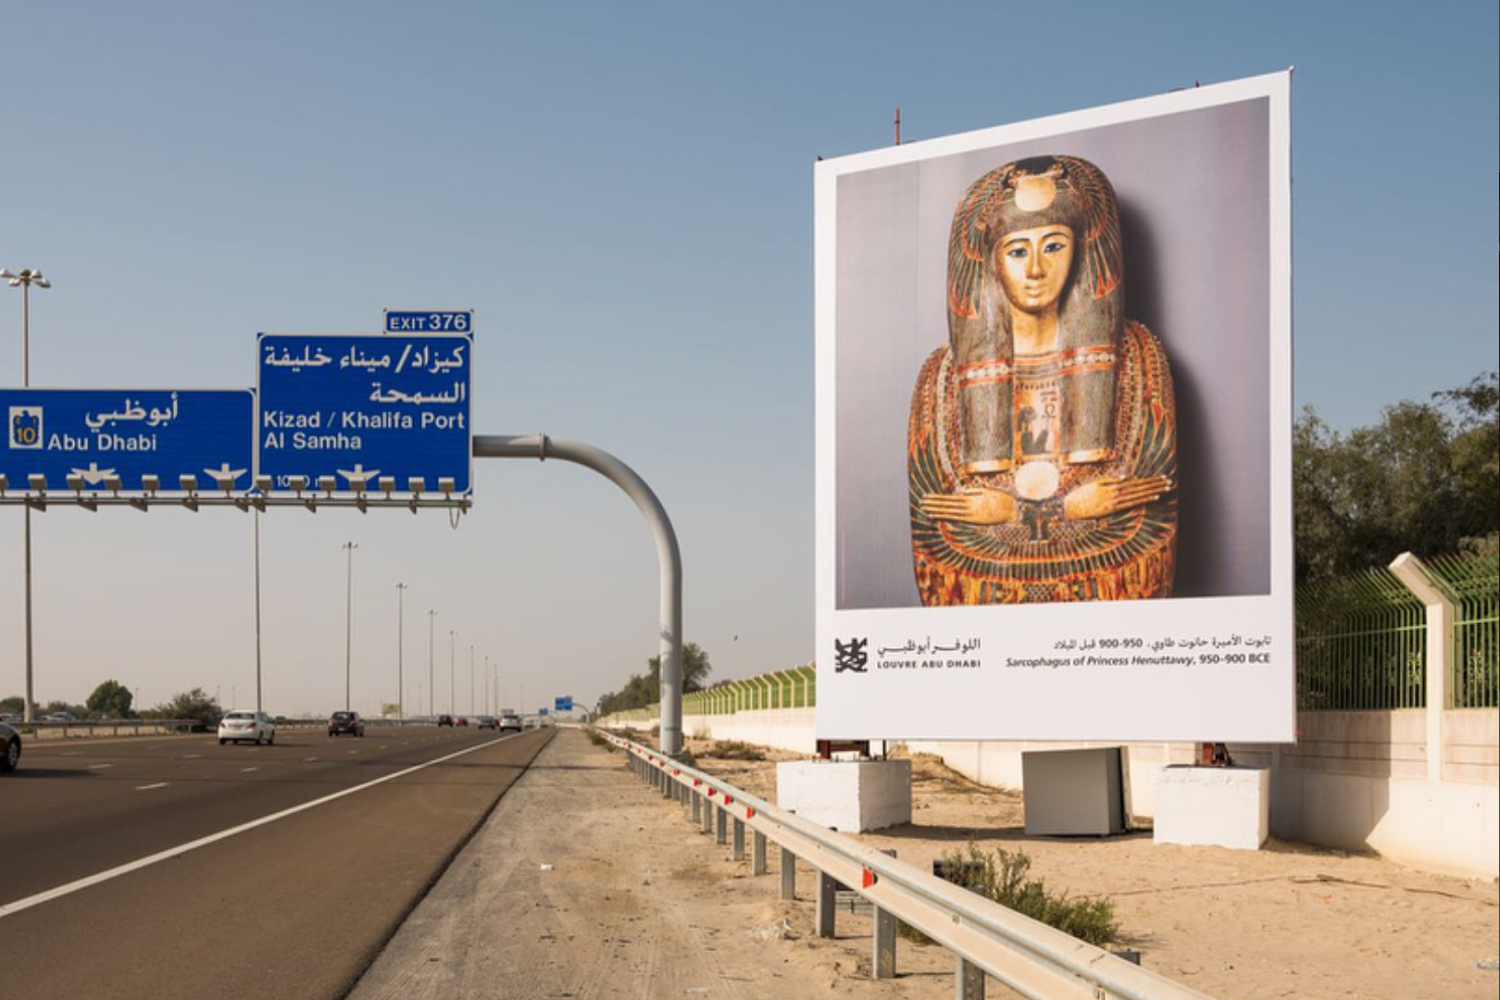 Louvre Abu Dhabi launches a drive-by art gallery on the highway to Dubai